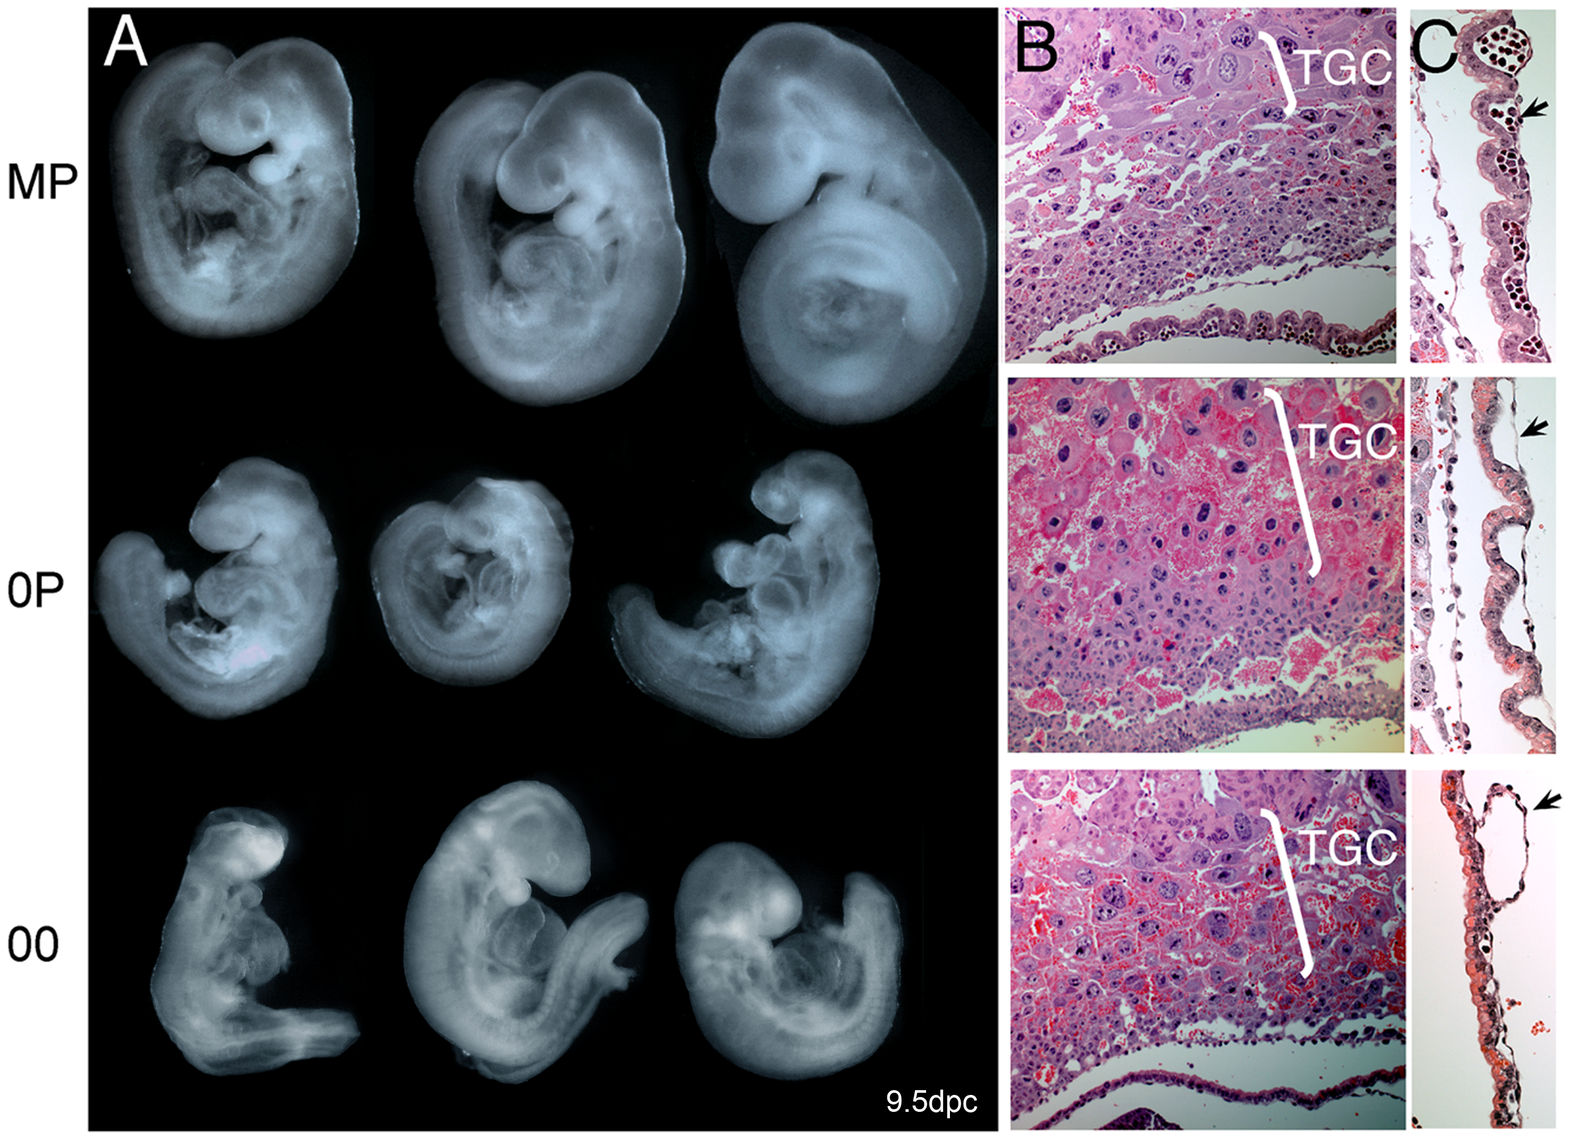 Net effects of loss of paternal and maternal germline imprints on early mouse development.